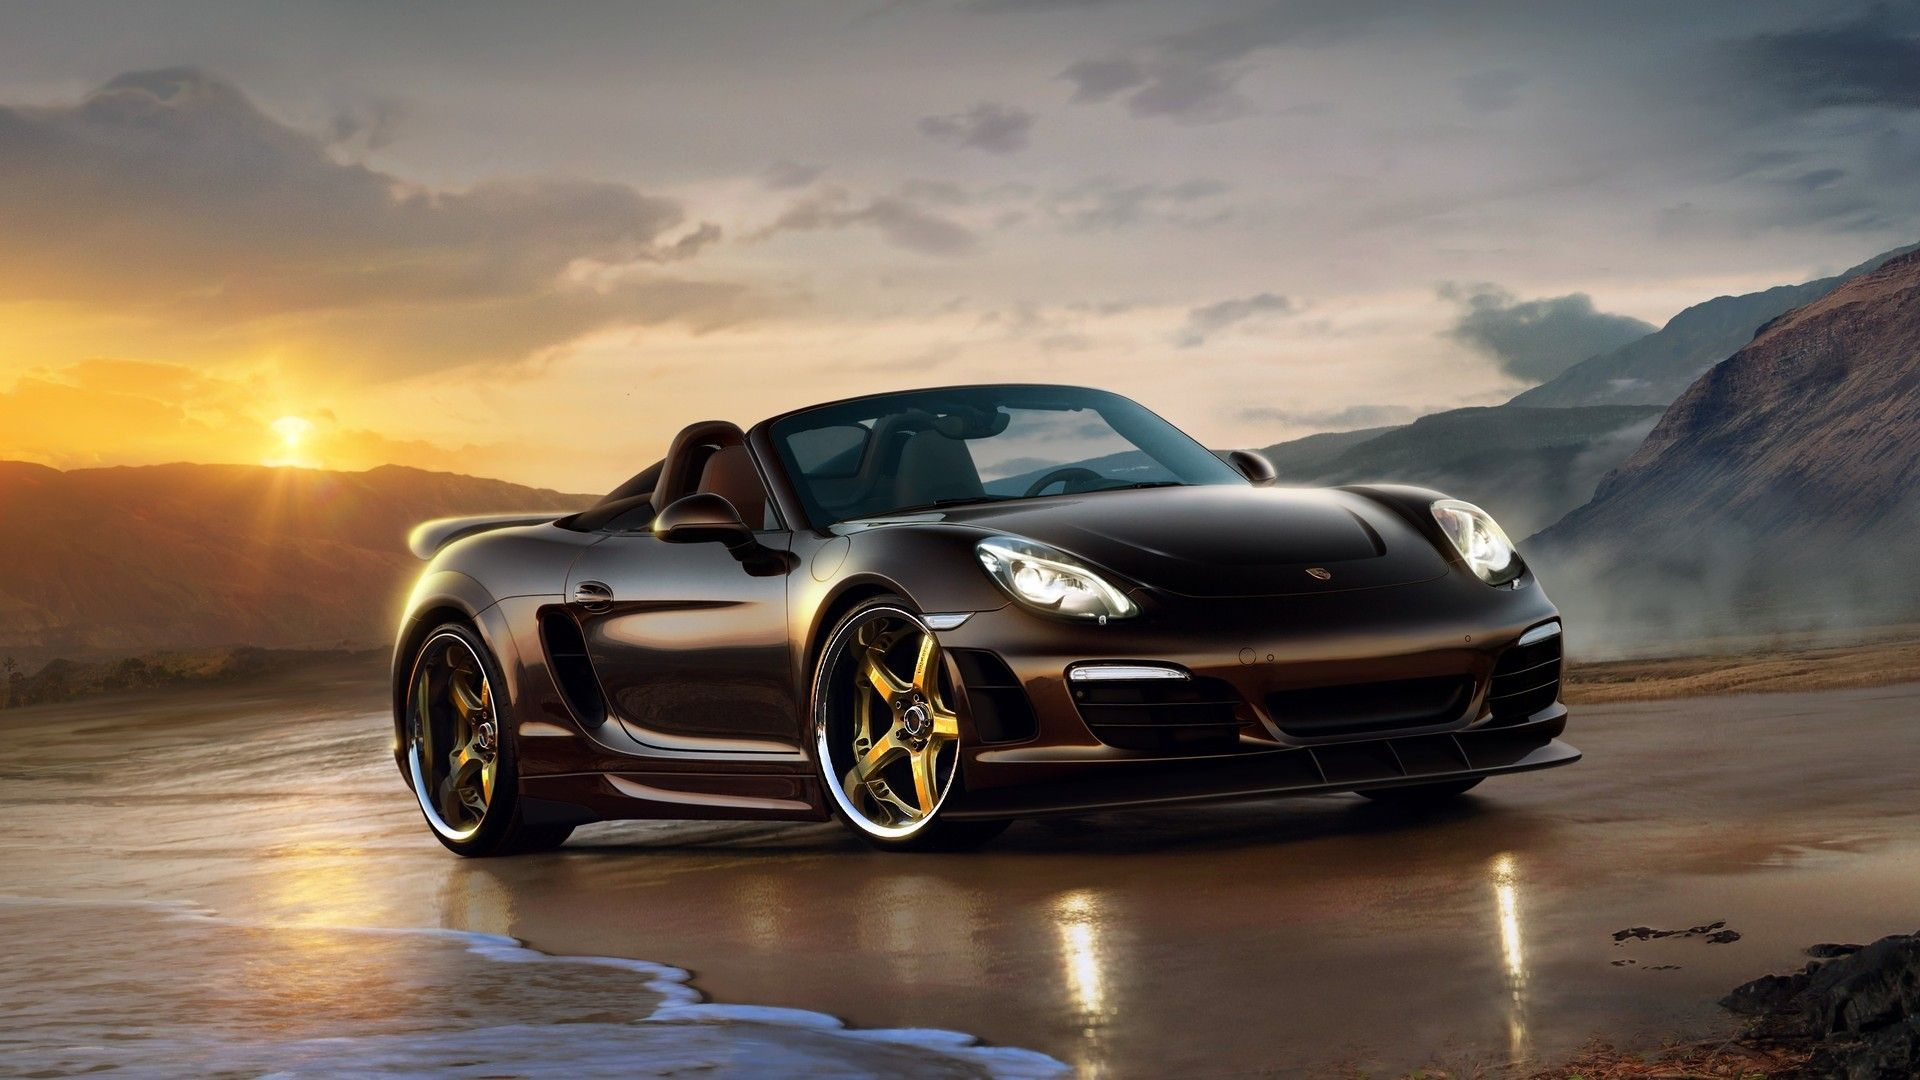 Download Desktop Wallpaper Porsche Carrera Gt Porsche Wallpaper Achtergrond